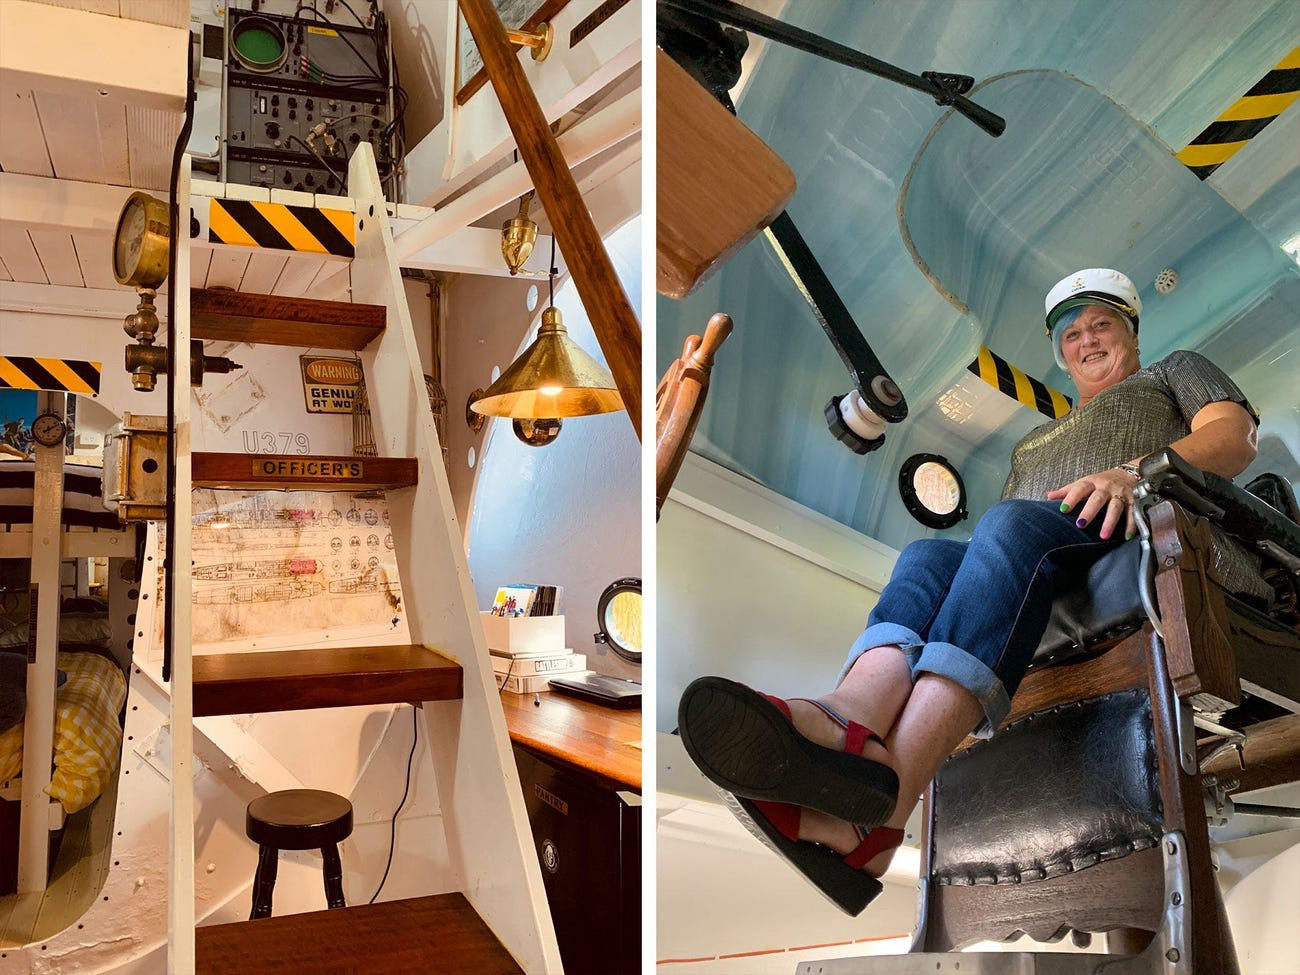 Left: Stairs ascend to the tiny home's upper level. Right: A guest sits in the captain's chair.